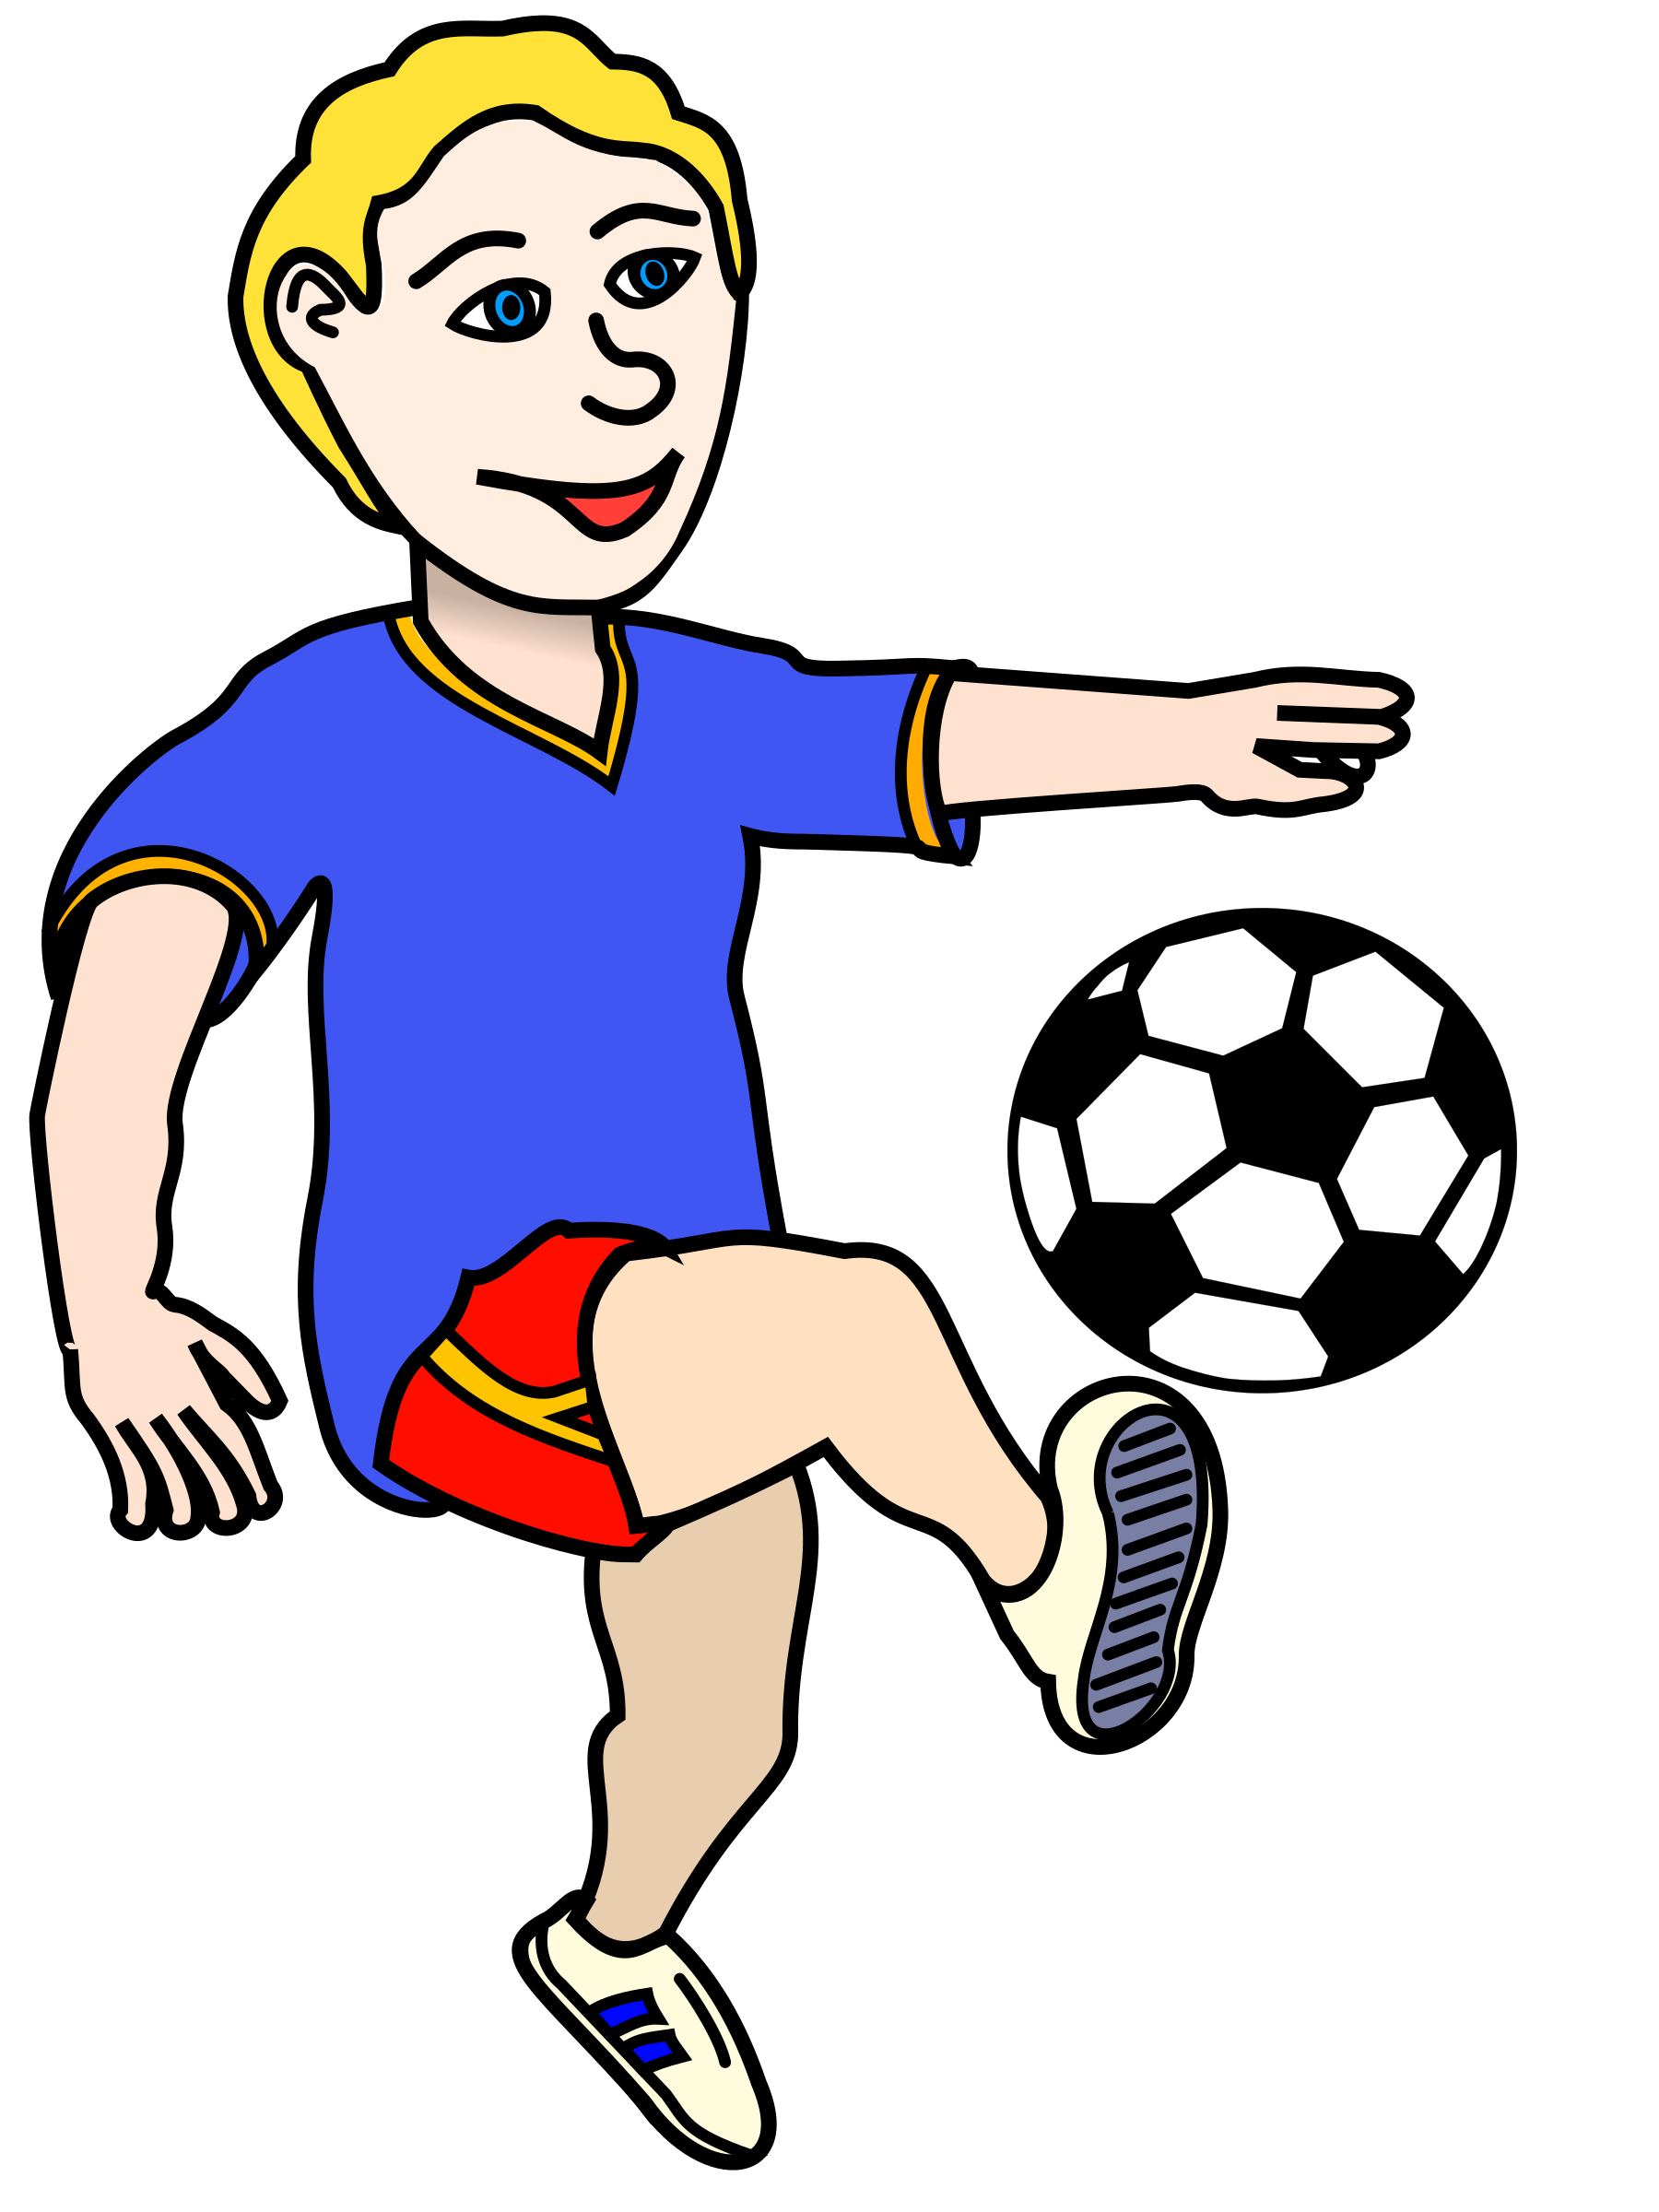 Football players clipart picture library Soccer Player Clipart at GetDrawings.com | Free for personal use ... picture library